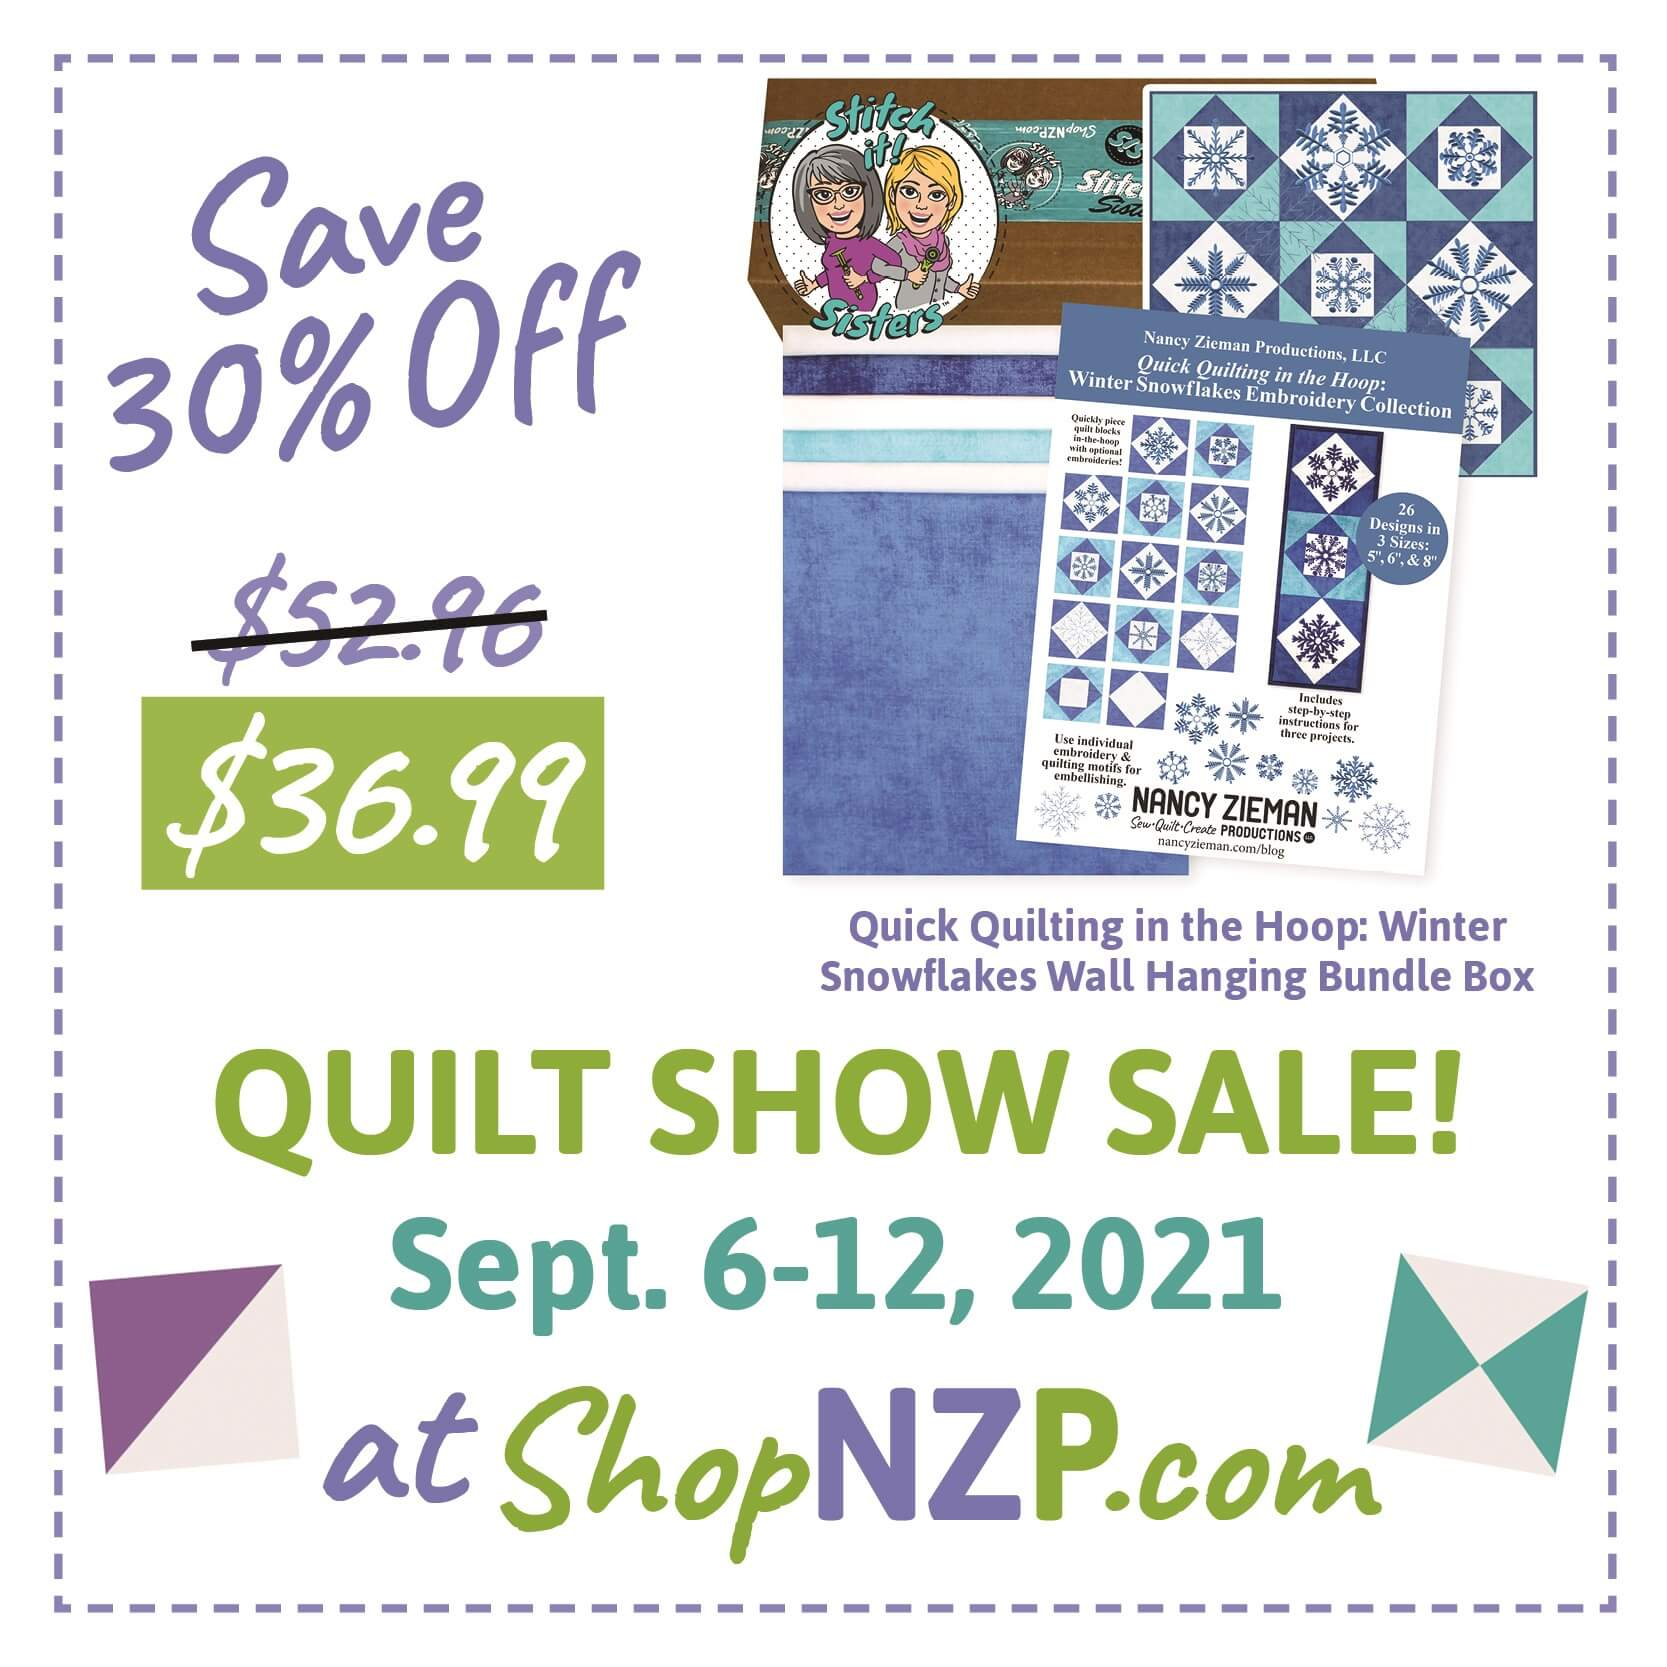 Save 30 Percent off Quick Quilting in the Hoop Winter Snowflakes Wall Hanging Bundle Box at Nancy Zieman Productions at ShopNZP